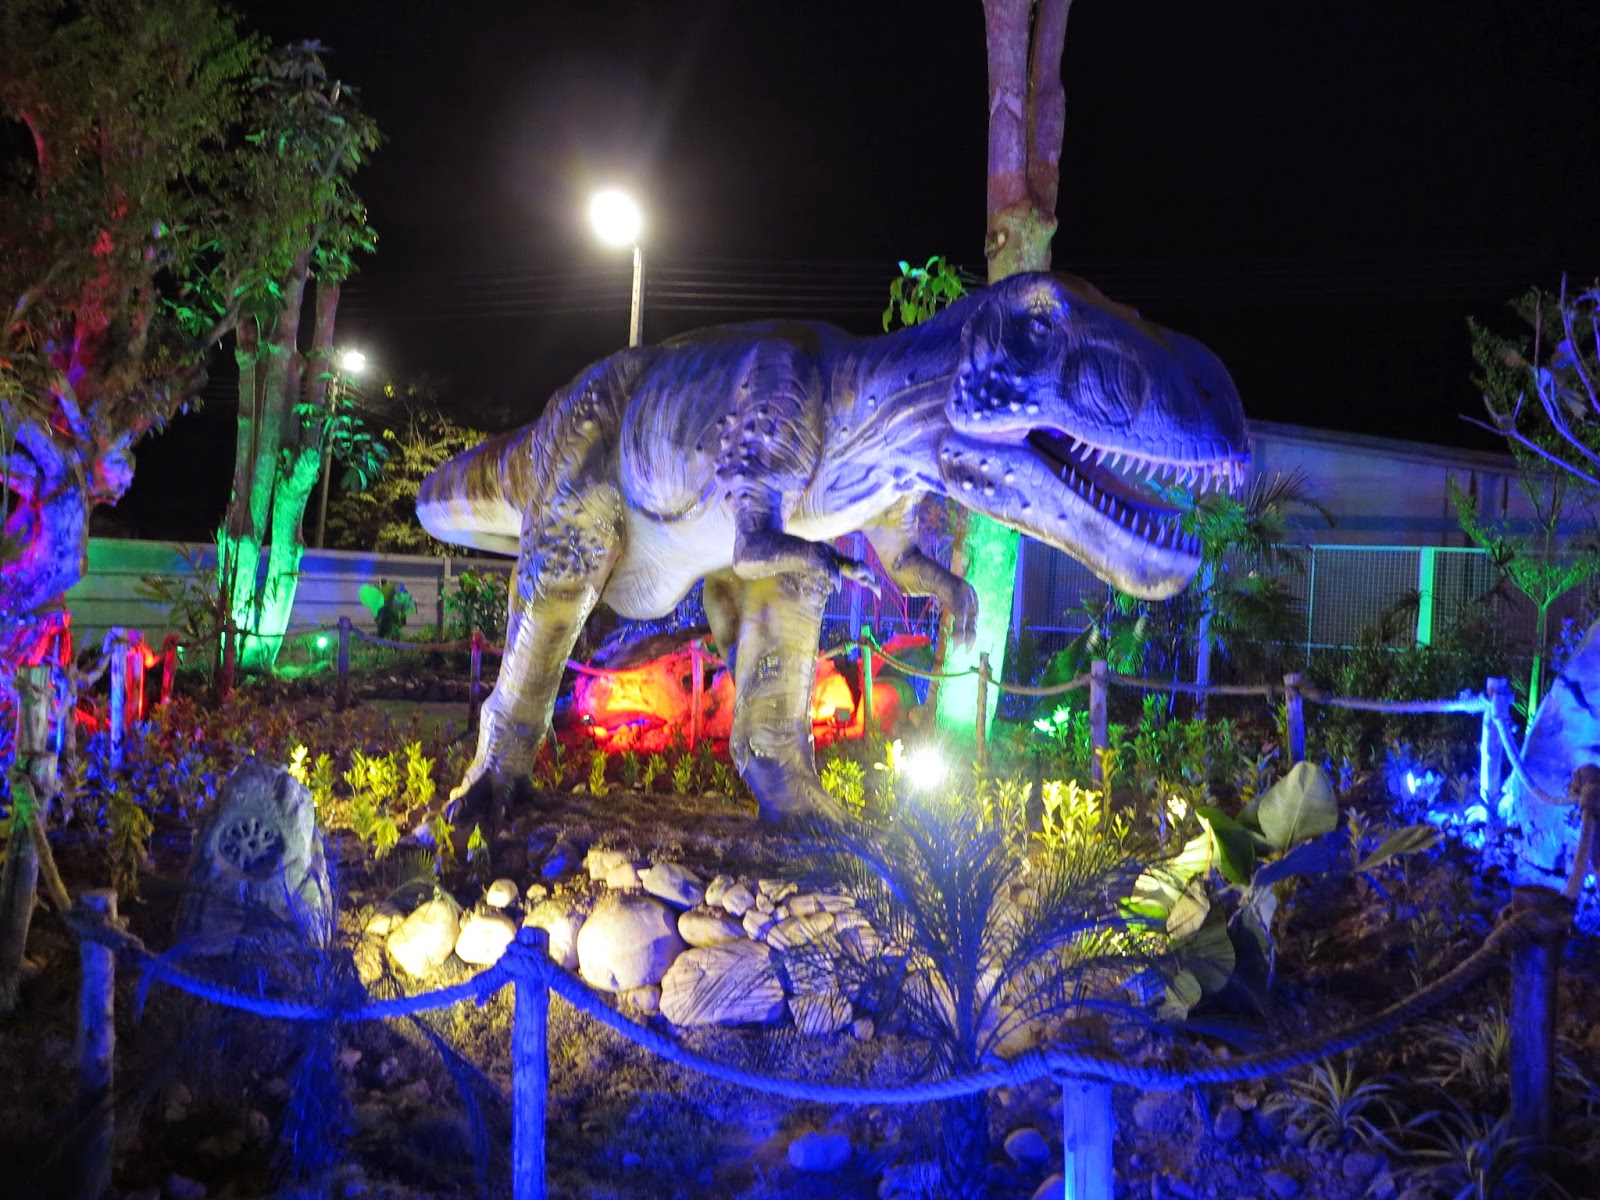 I Travel I Blog: Dinosaur Park @ Dannok